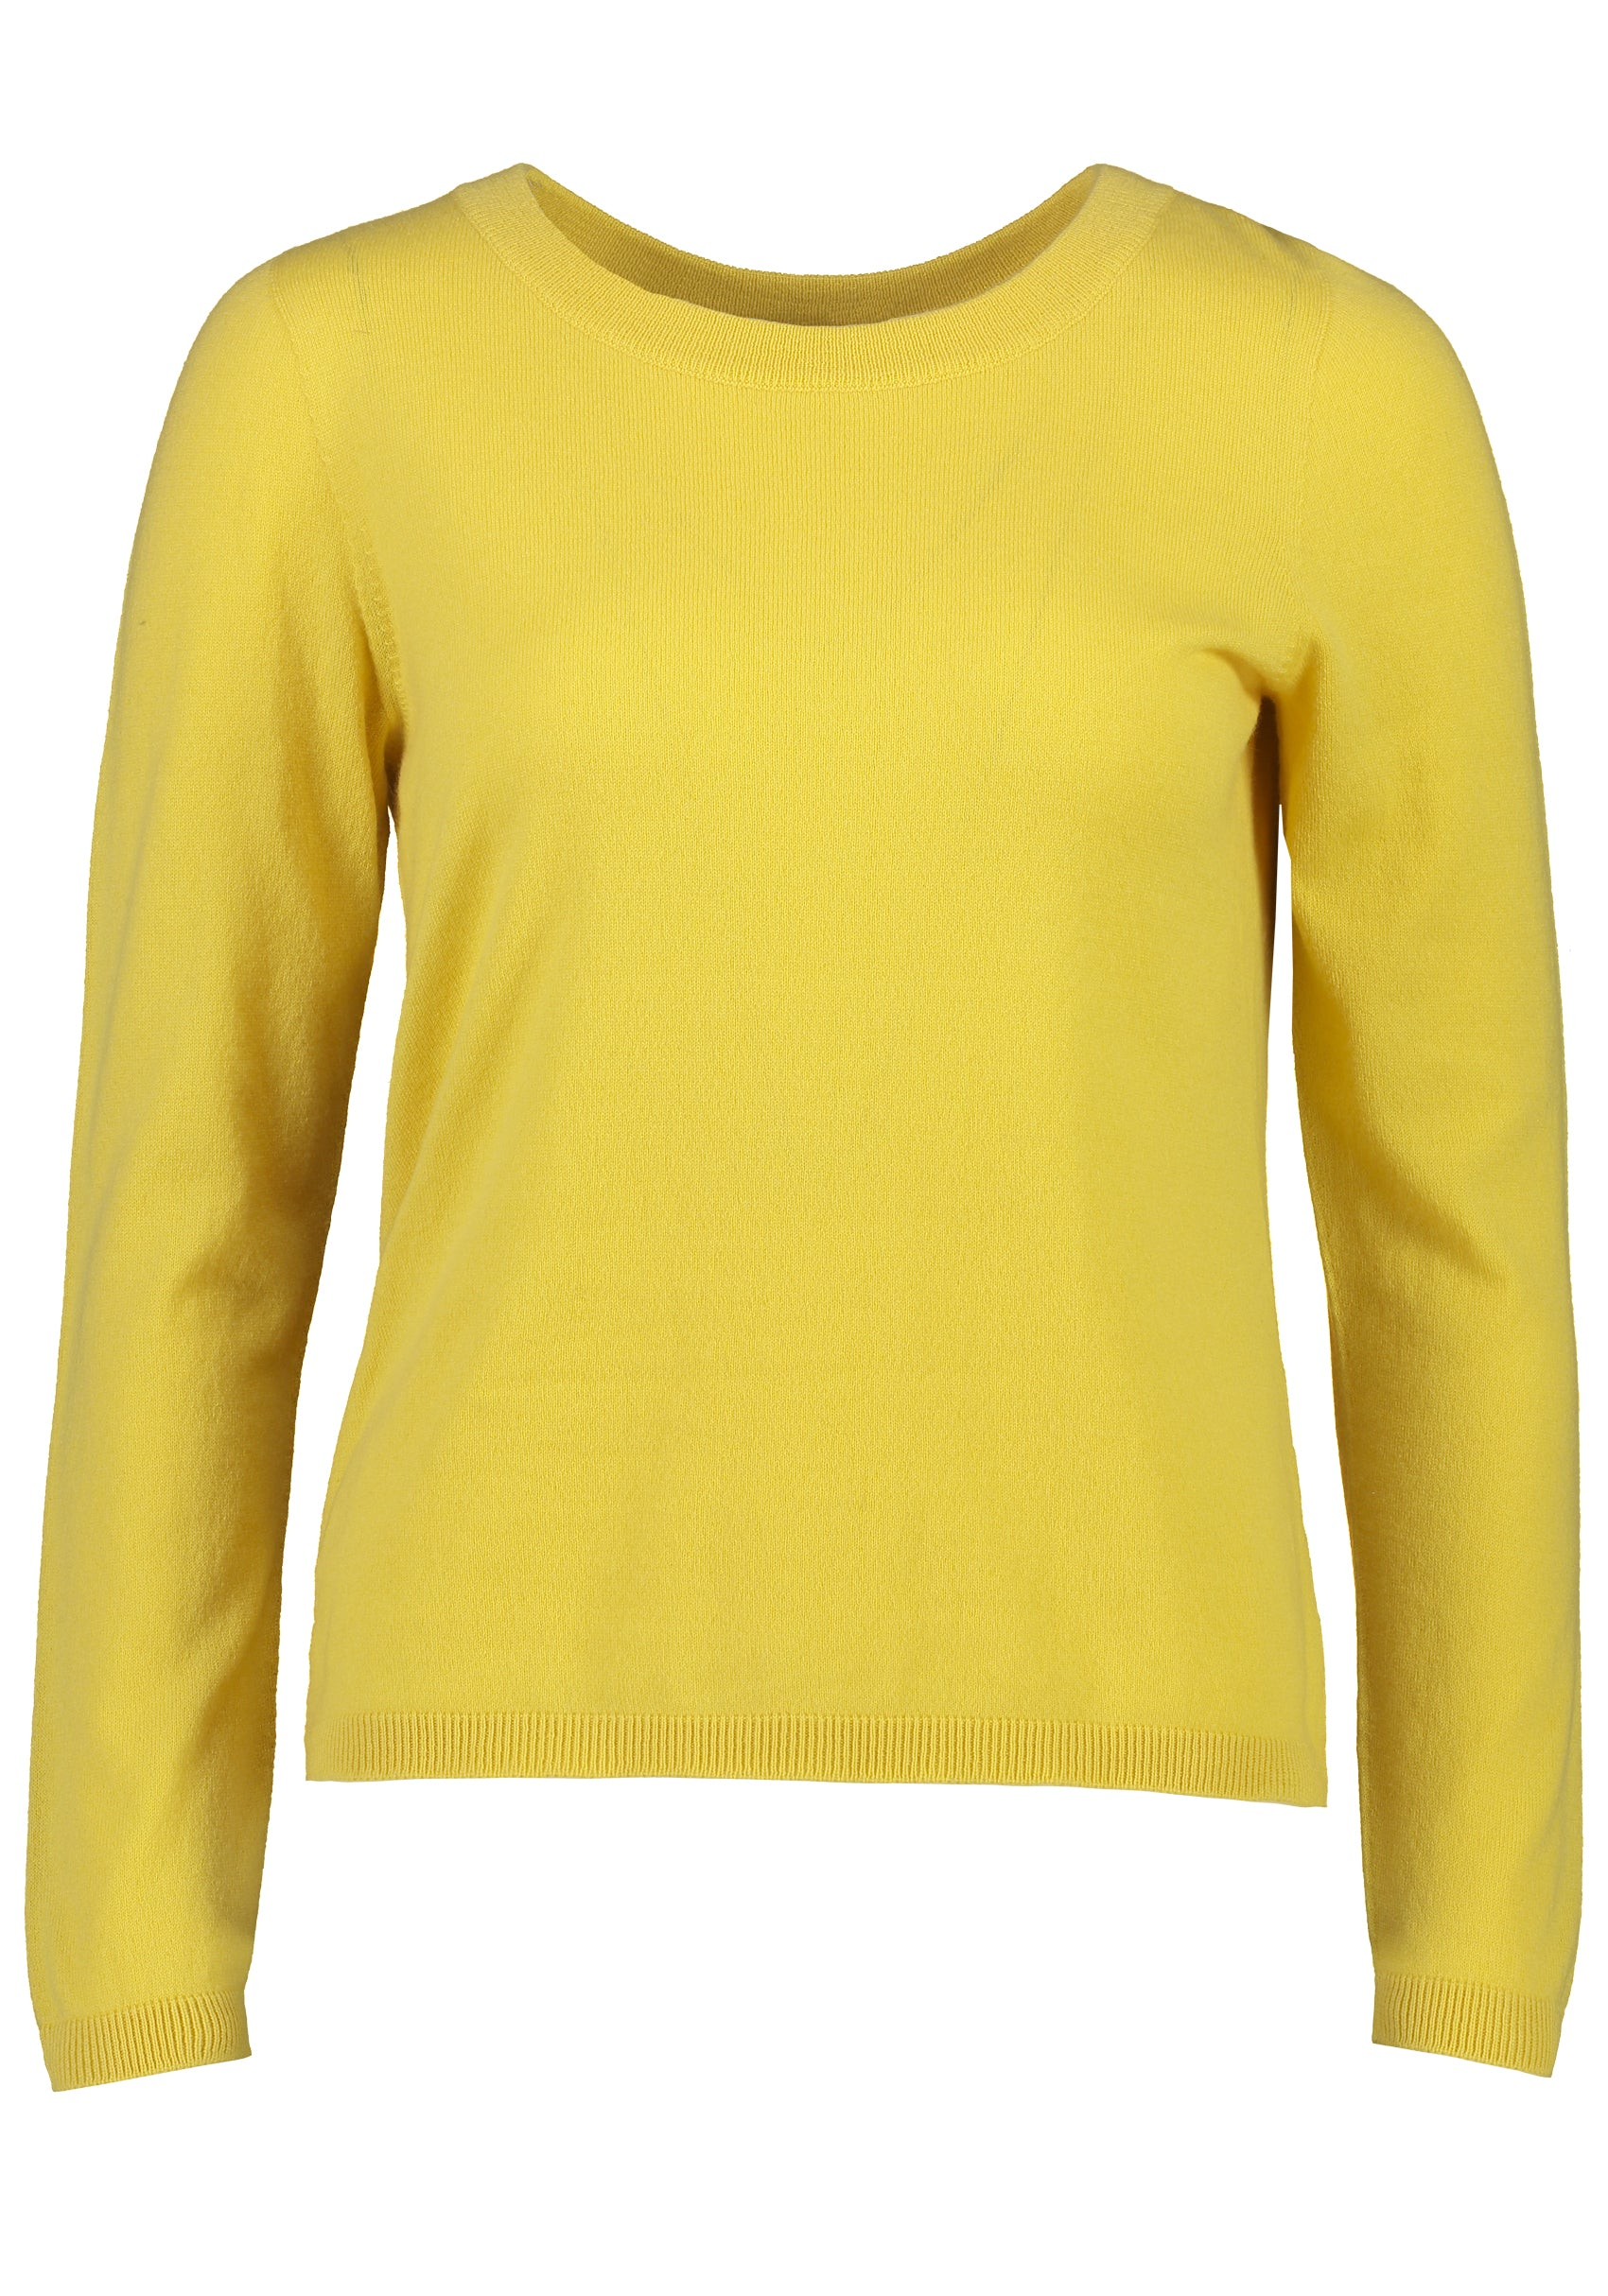 Cashmere Crew Neck - Standard Issue